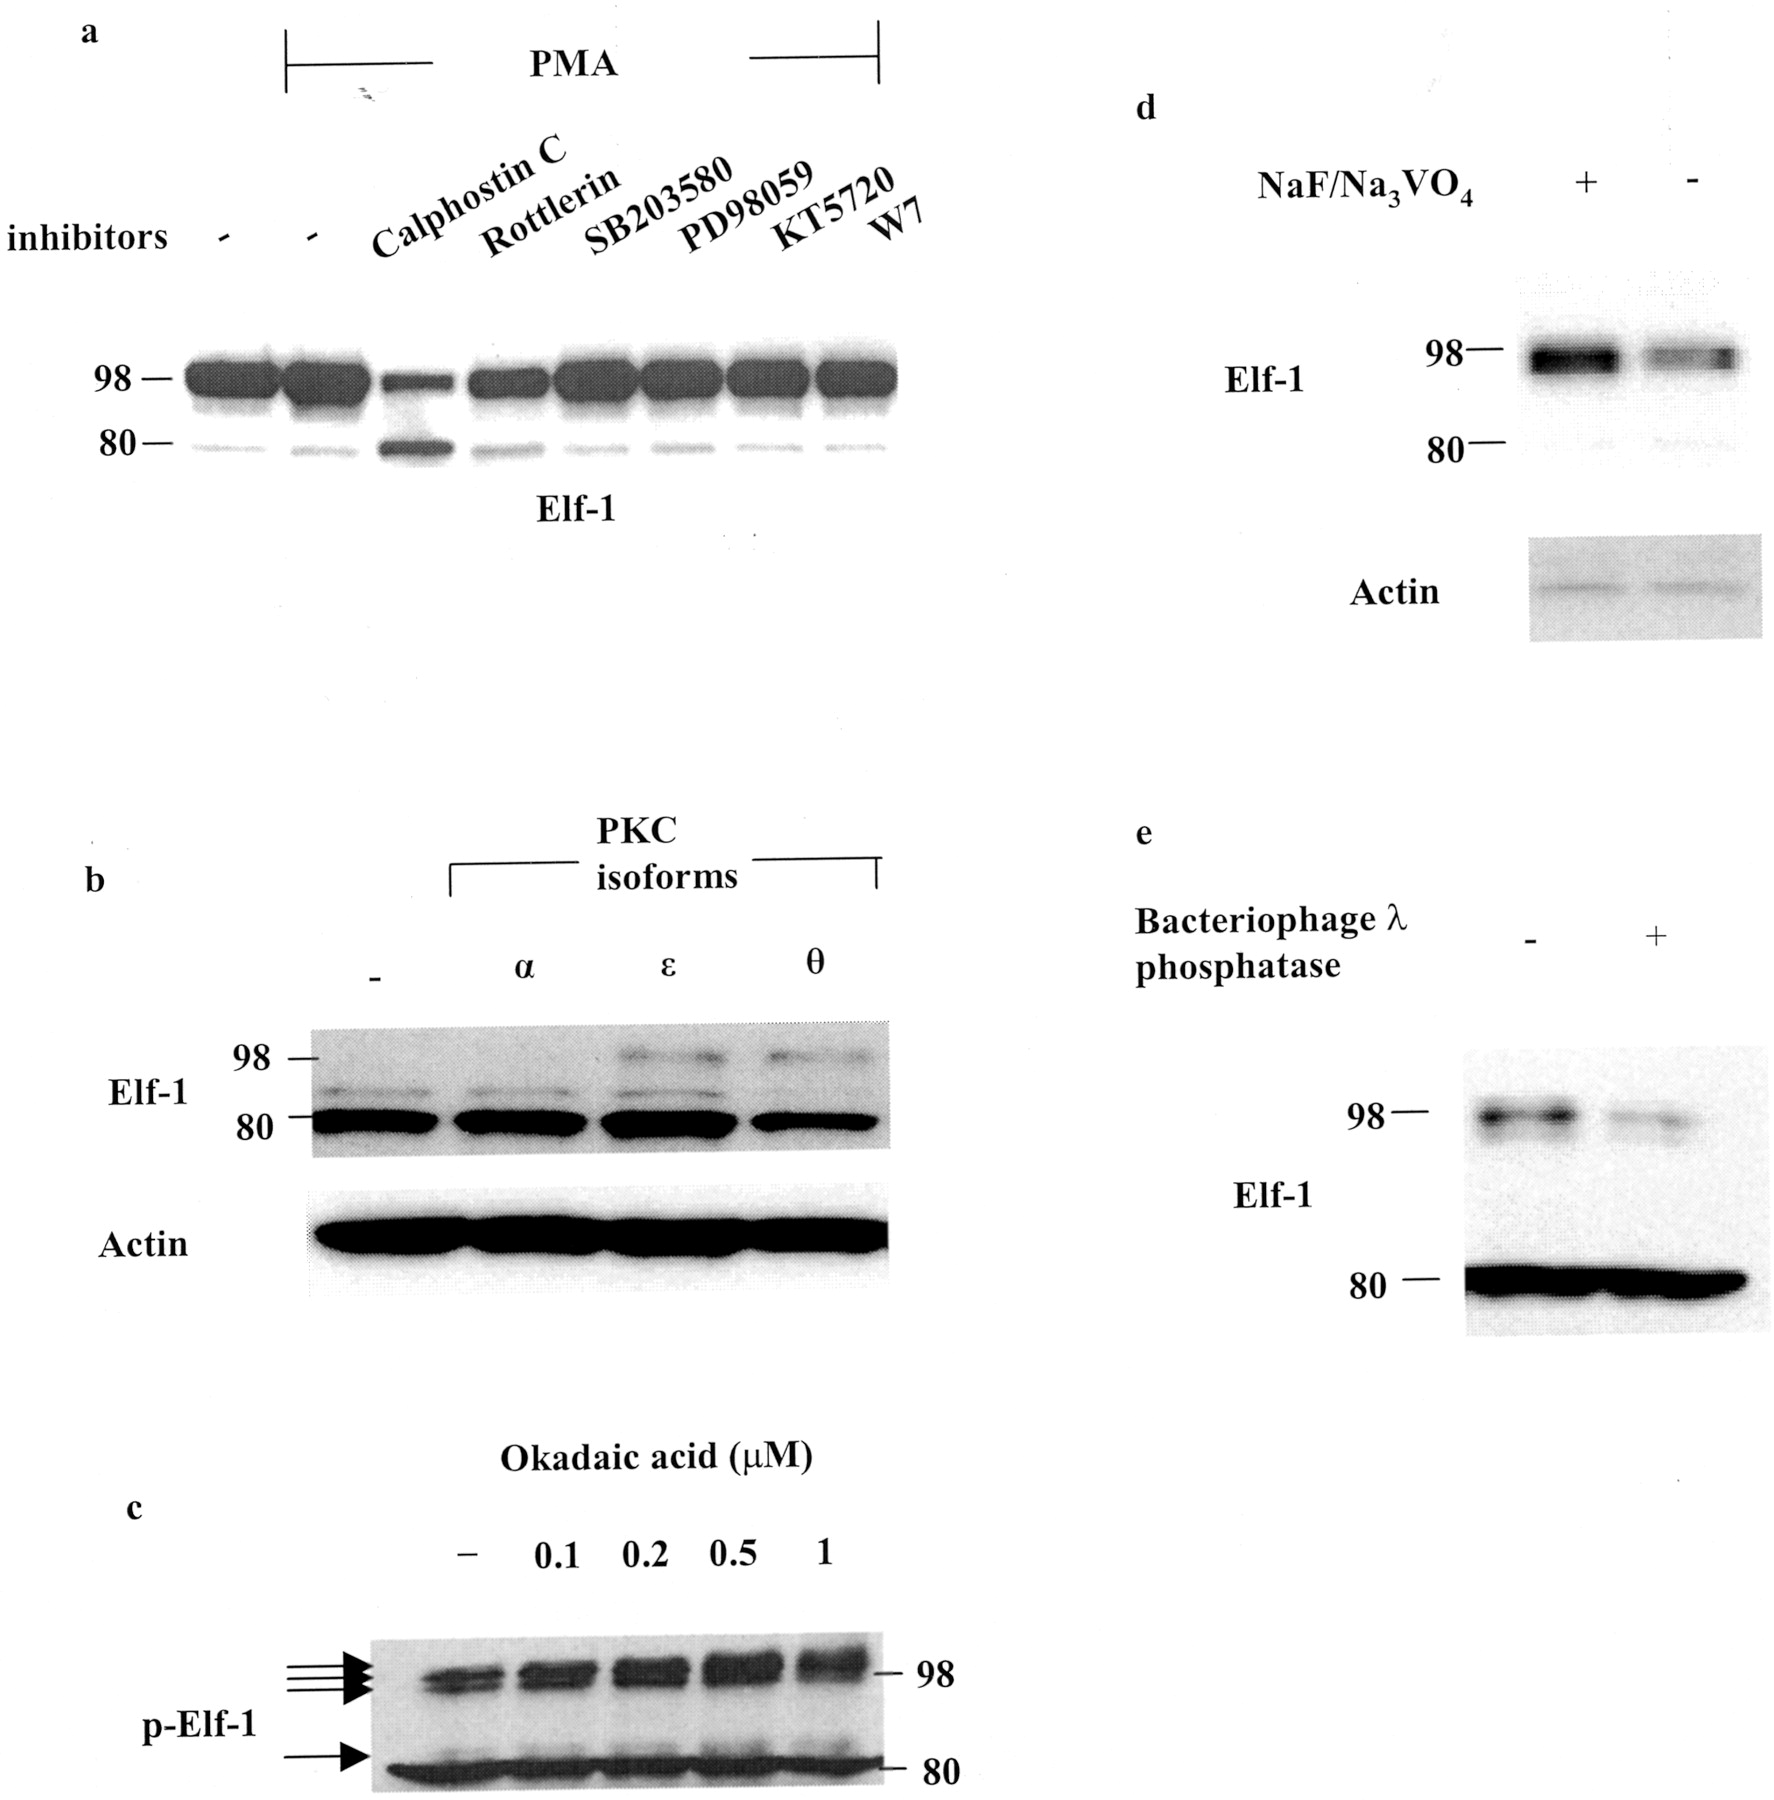 Phosphorylation and O-Linked Glycosylation of Elf-1 Leads to Its ...